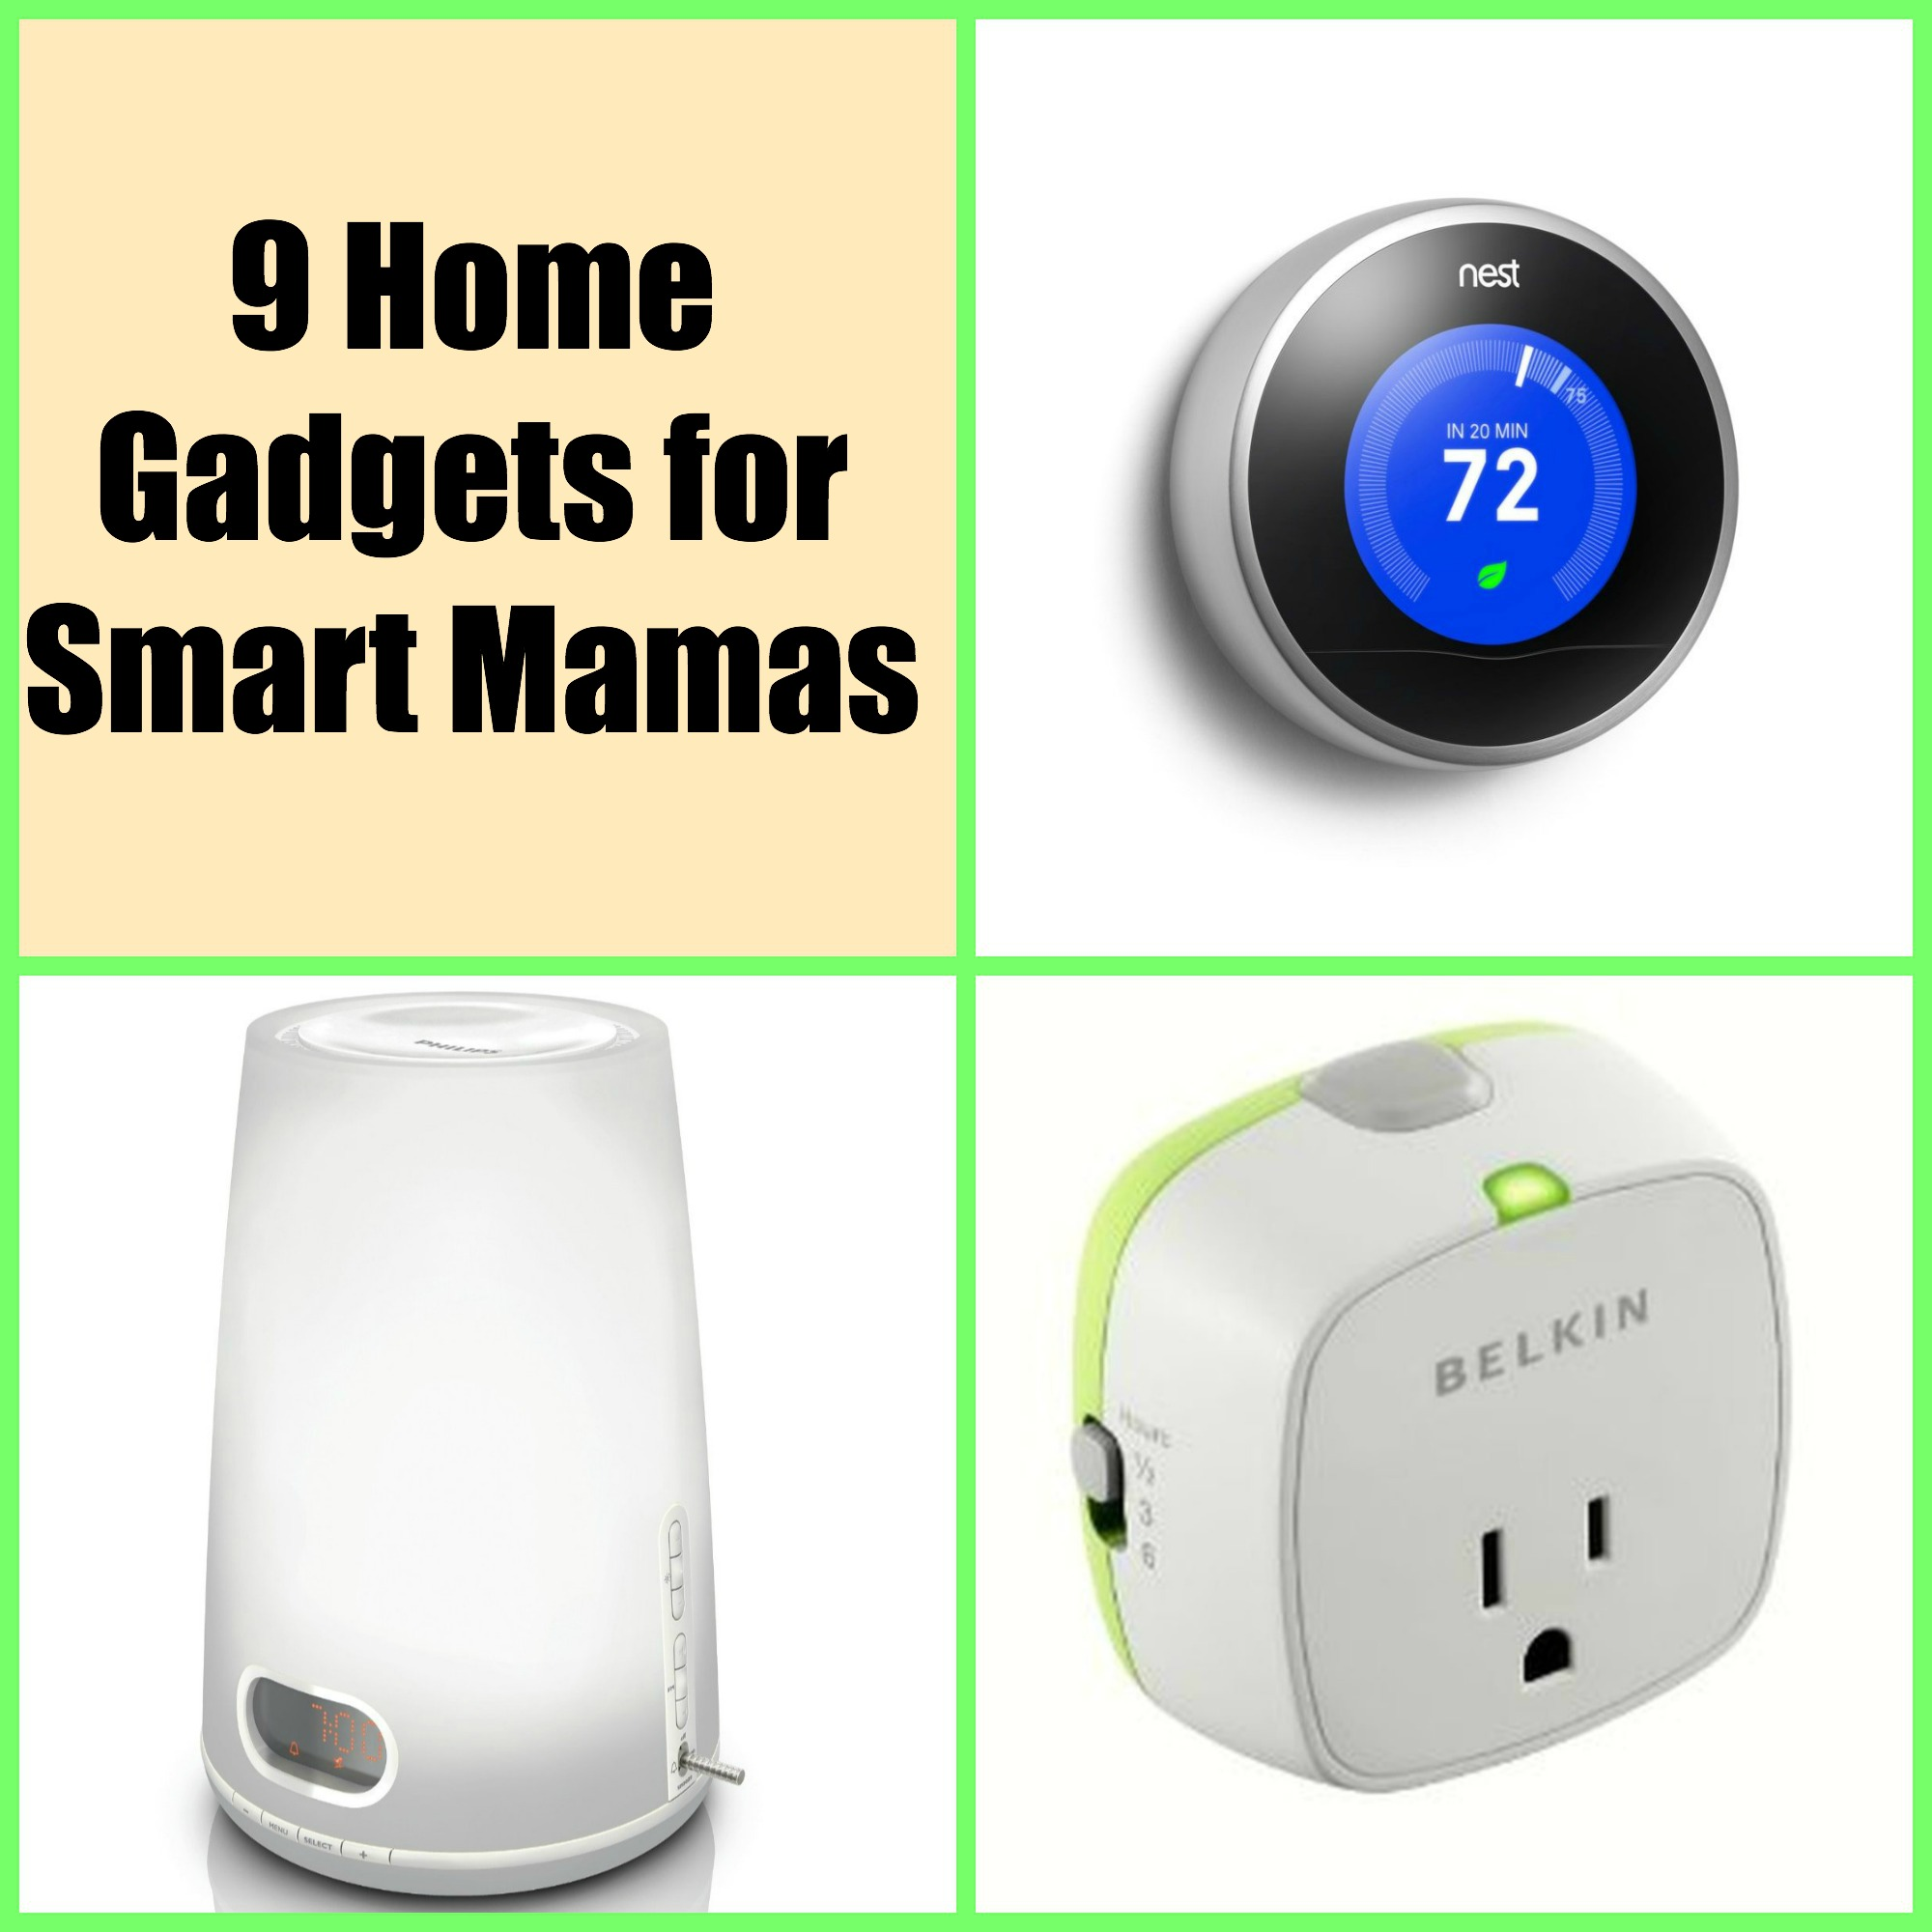 Home Gadget 28 Images 7 Smart Home Gadgets Worth: high tech home gadgets